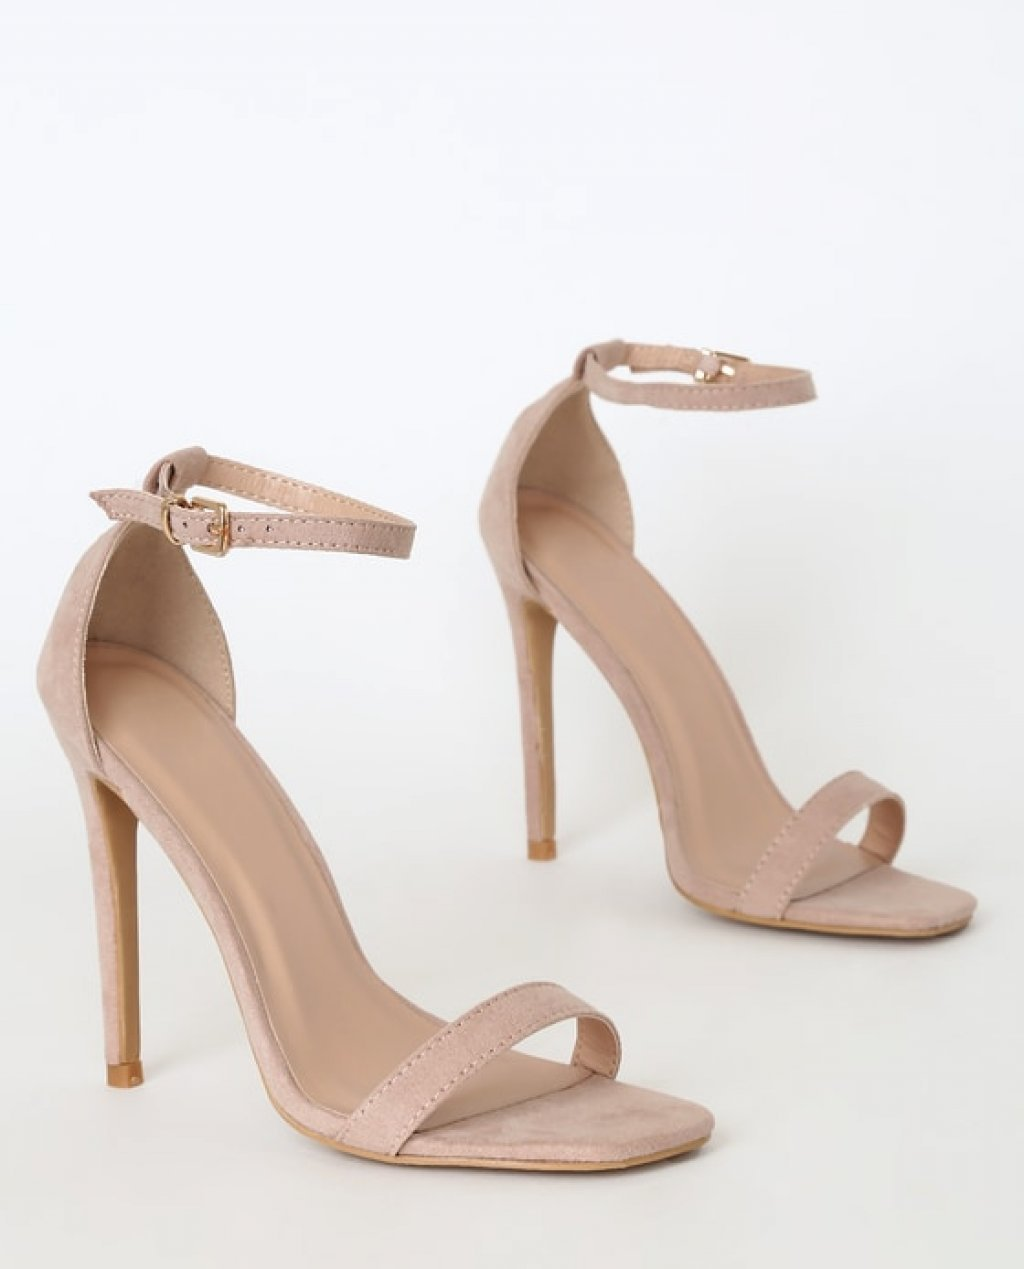 Caraleigh Nude Suede Square Toe Ankle Strap Heels